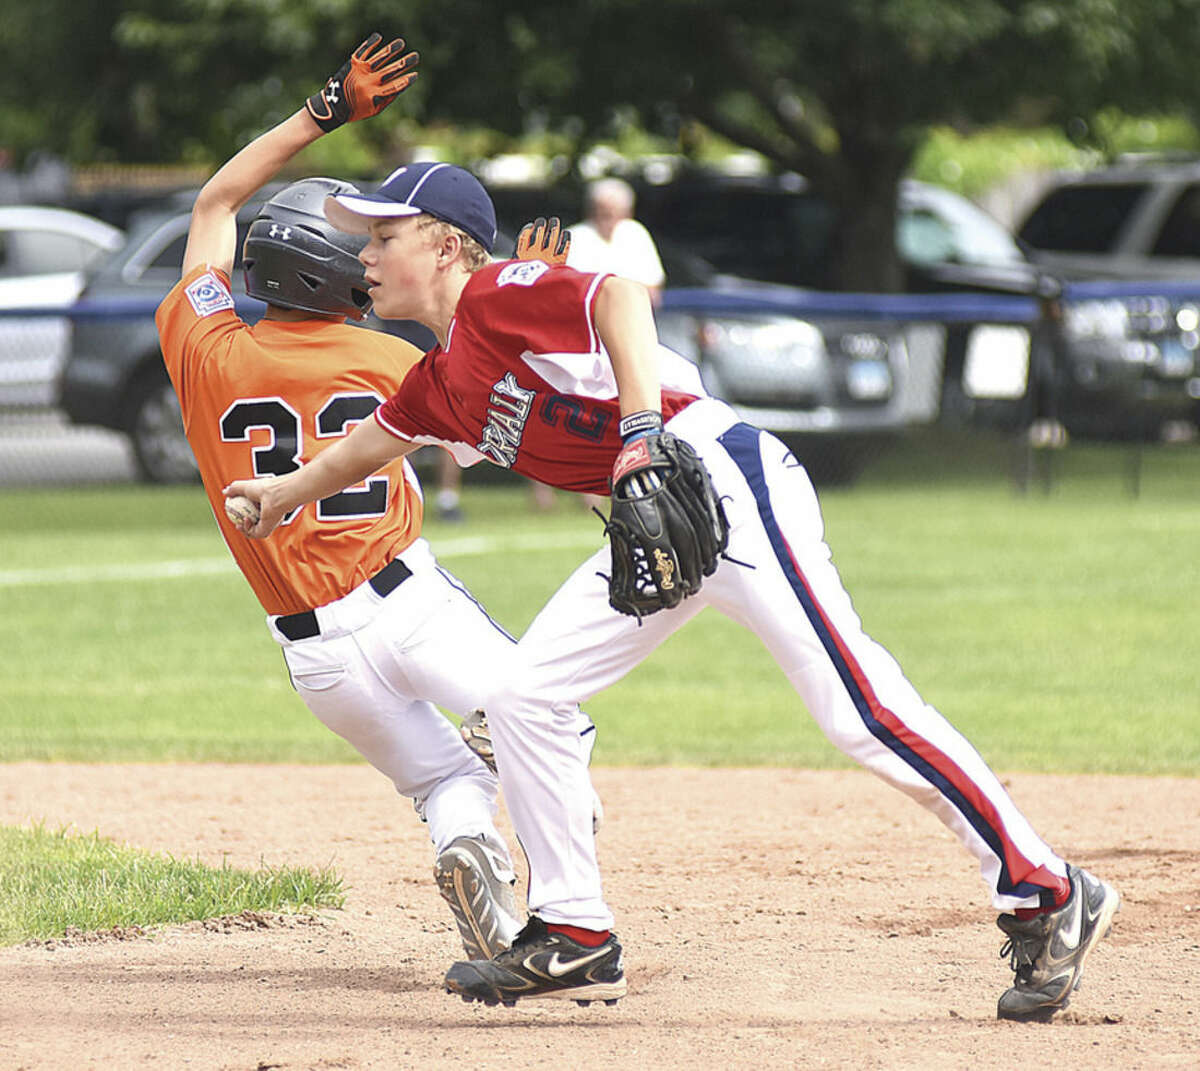 Hour photo/John Nash Norwalk 12-year-old All-Star second baseman Landon Heatly just misses a tag on Ridgefield baserunner Luke Barrientos during Saturday's District 1 Little League tournament gmae at Frank Noto Field in Stamford. Ridgefield remained unbeaten with a 9-3 win.